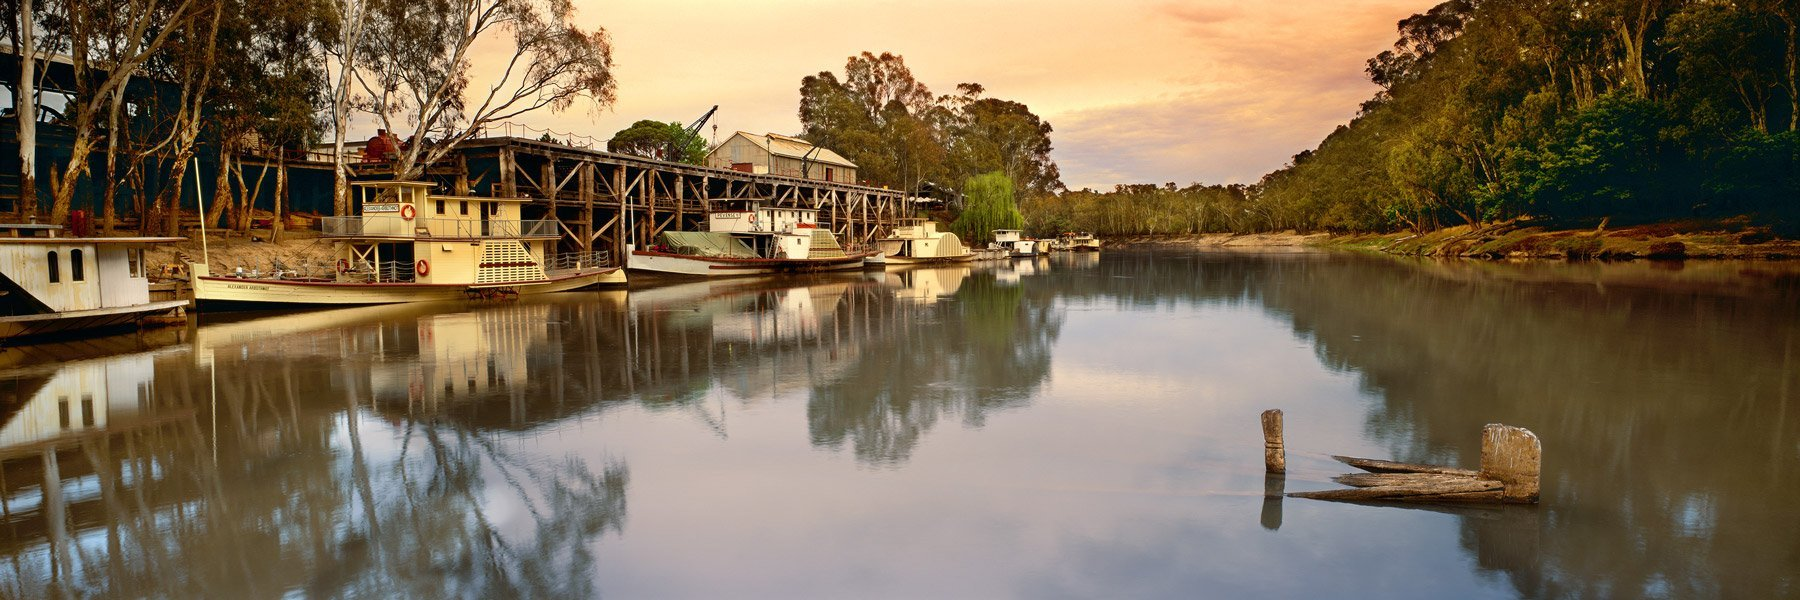 Paddle Steamers reflected in the Murray River, Echuca, Victoria, Australia.